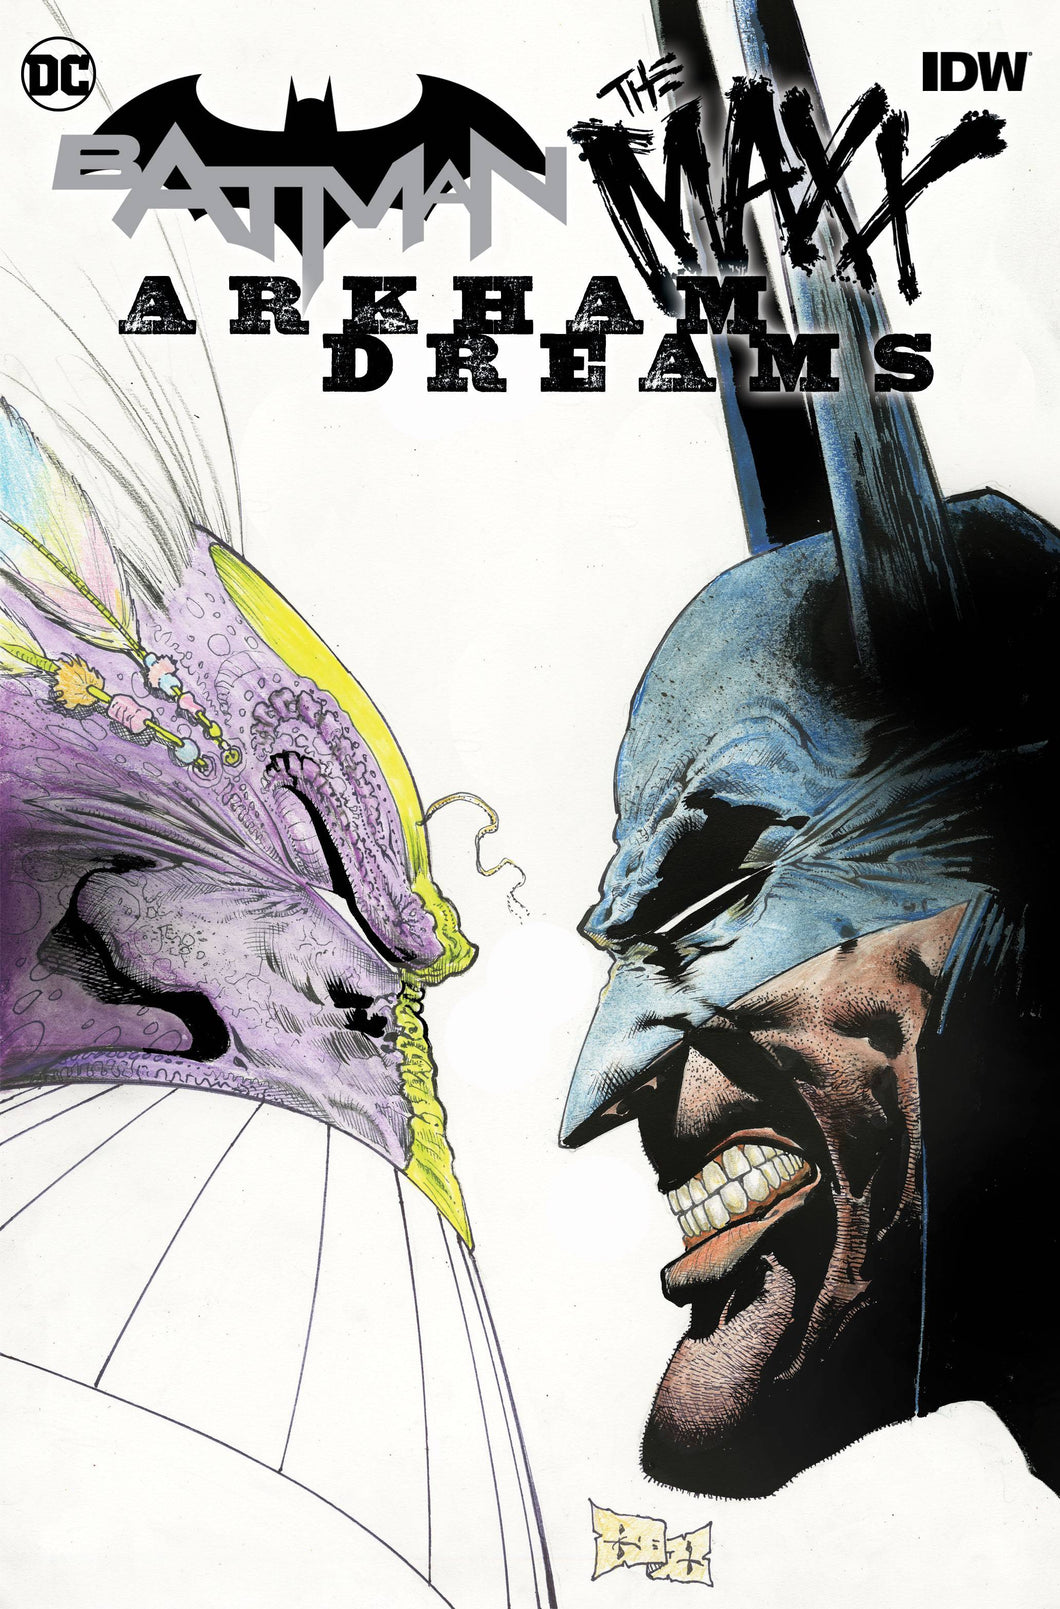 BATMAN THE MAXX #1 (OF 5) ARKHAM DREAMS CVR A KIETH 10/03